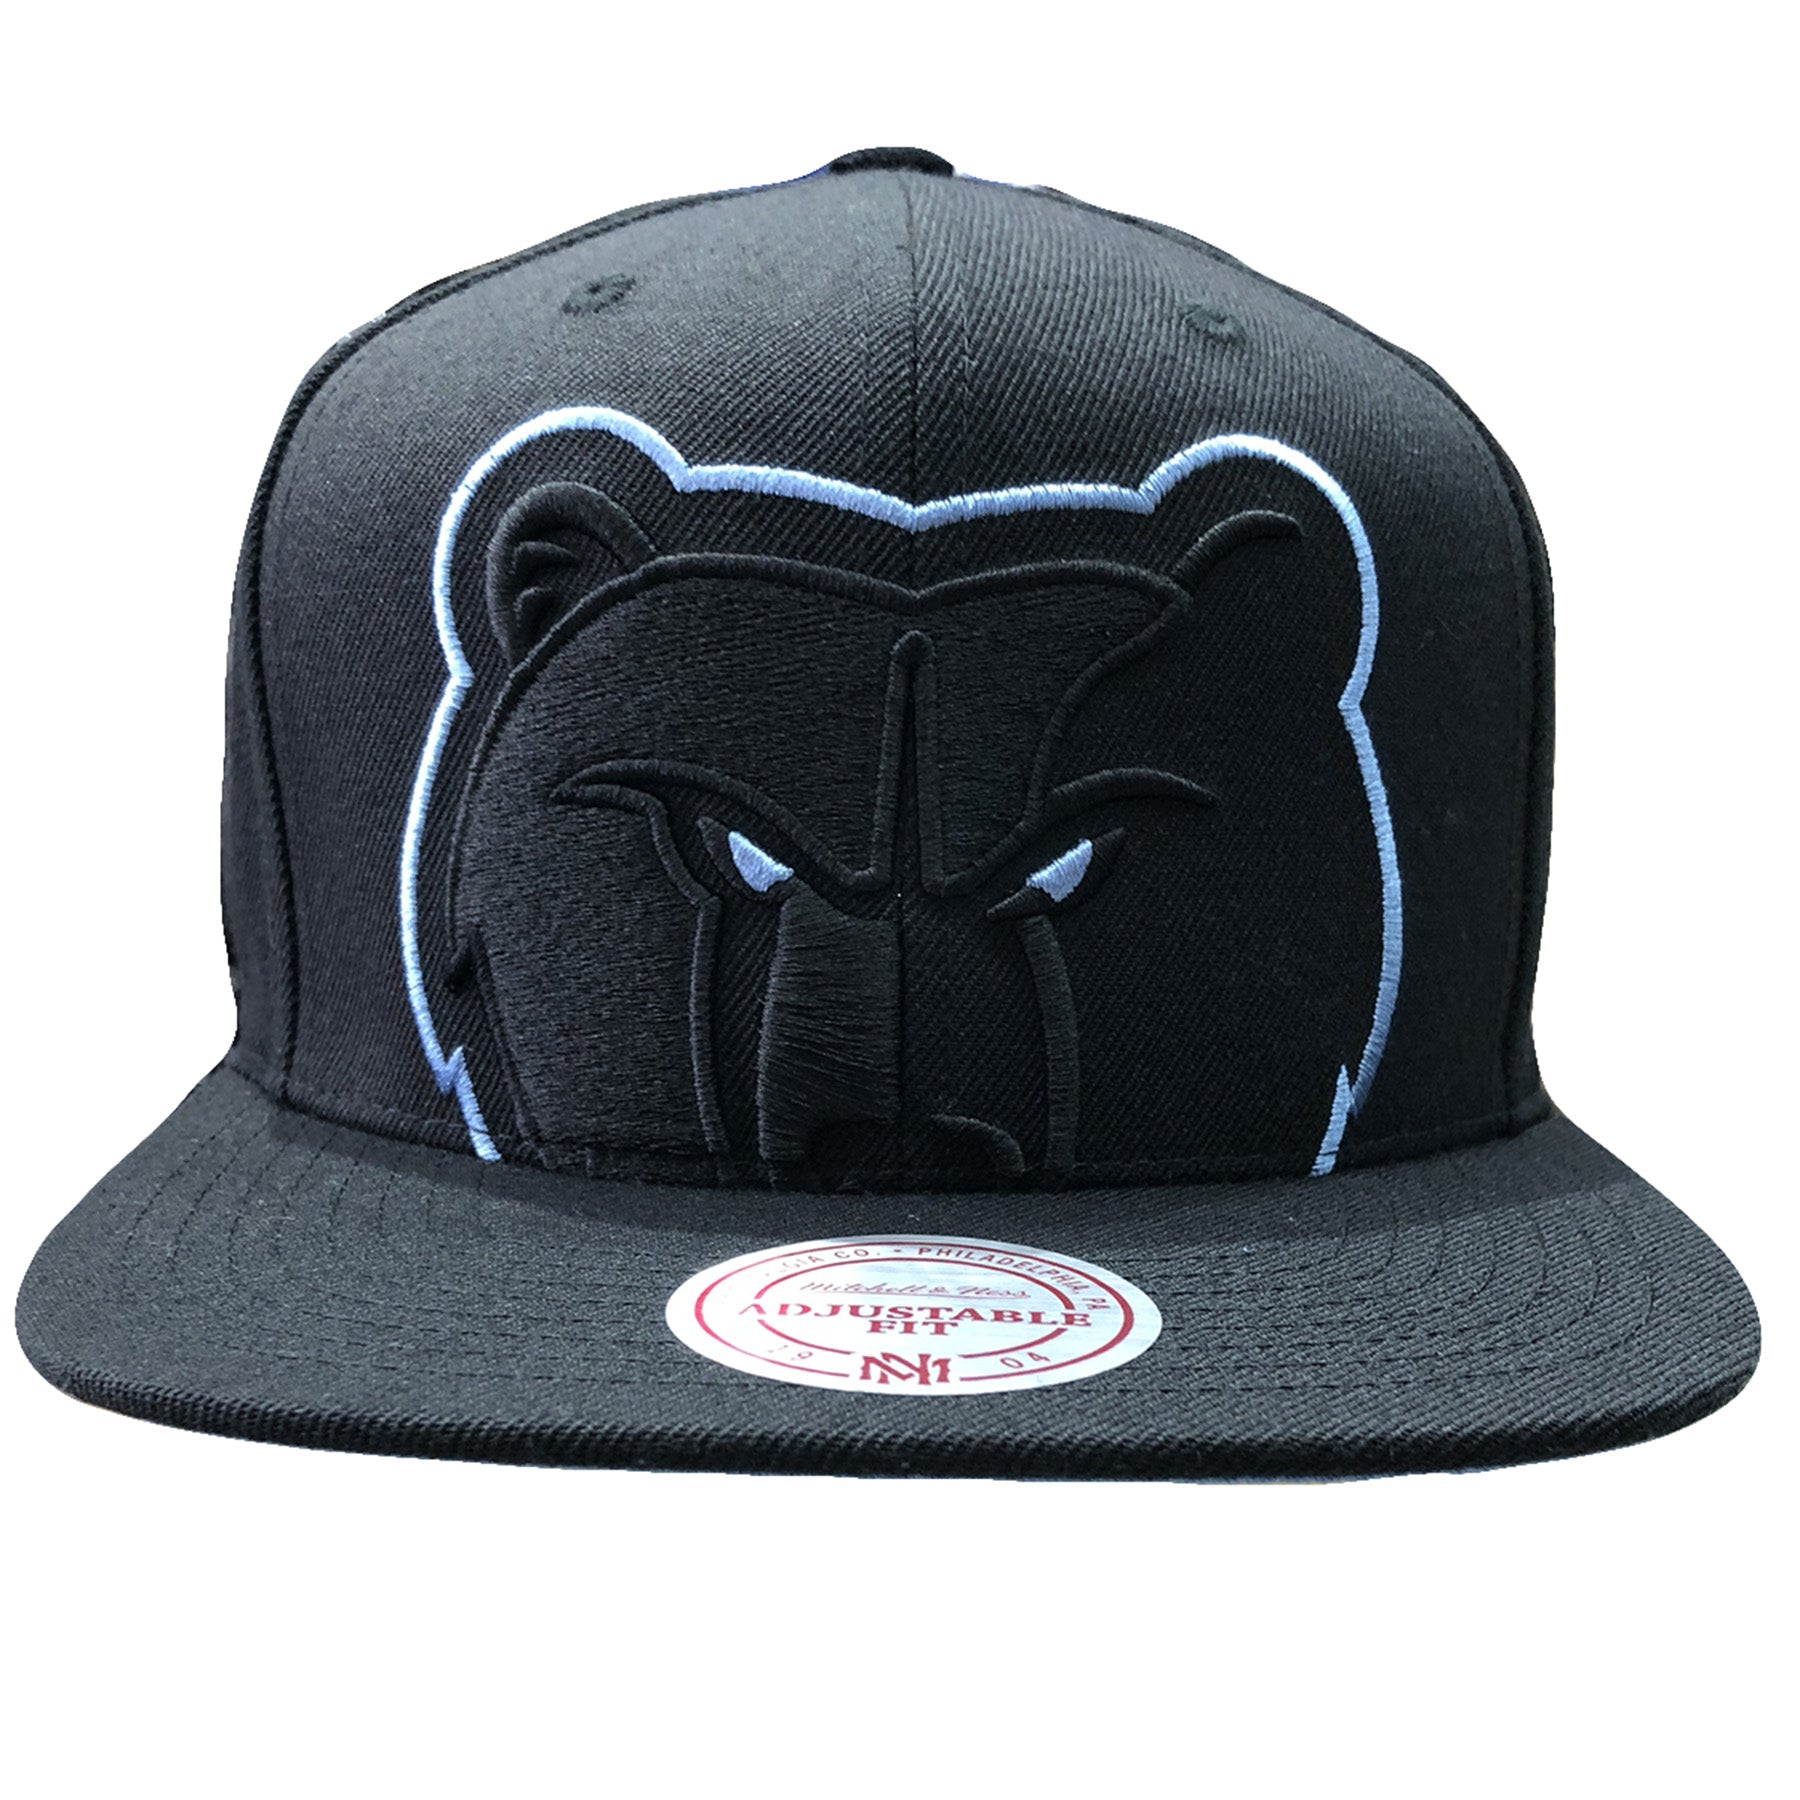 6a4a0d9b on the front of the Memphis Grizzlies snapback hat, the Grizzlies logo is  embroidered in